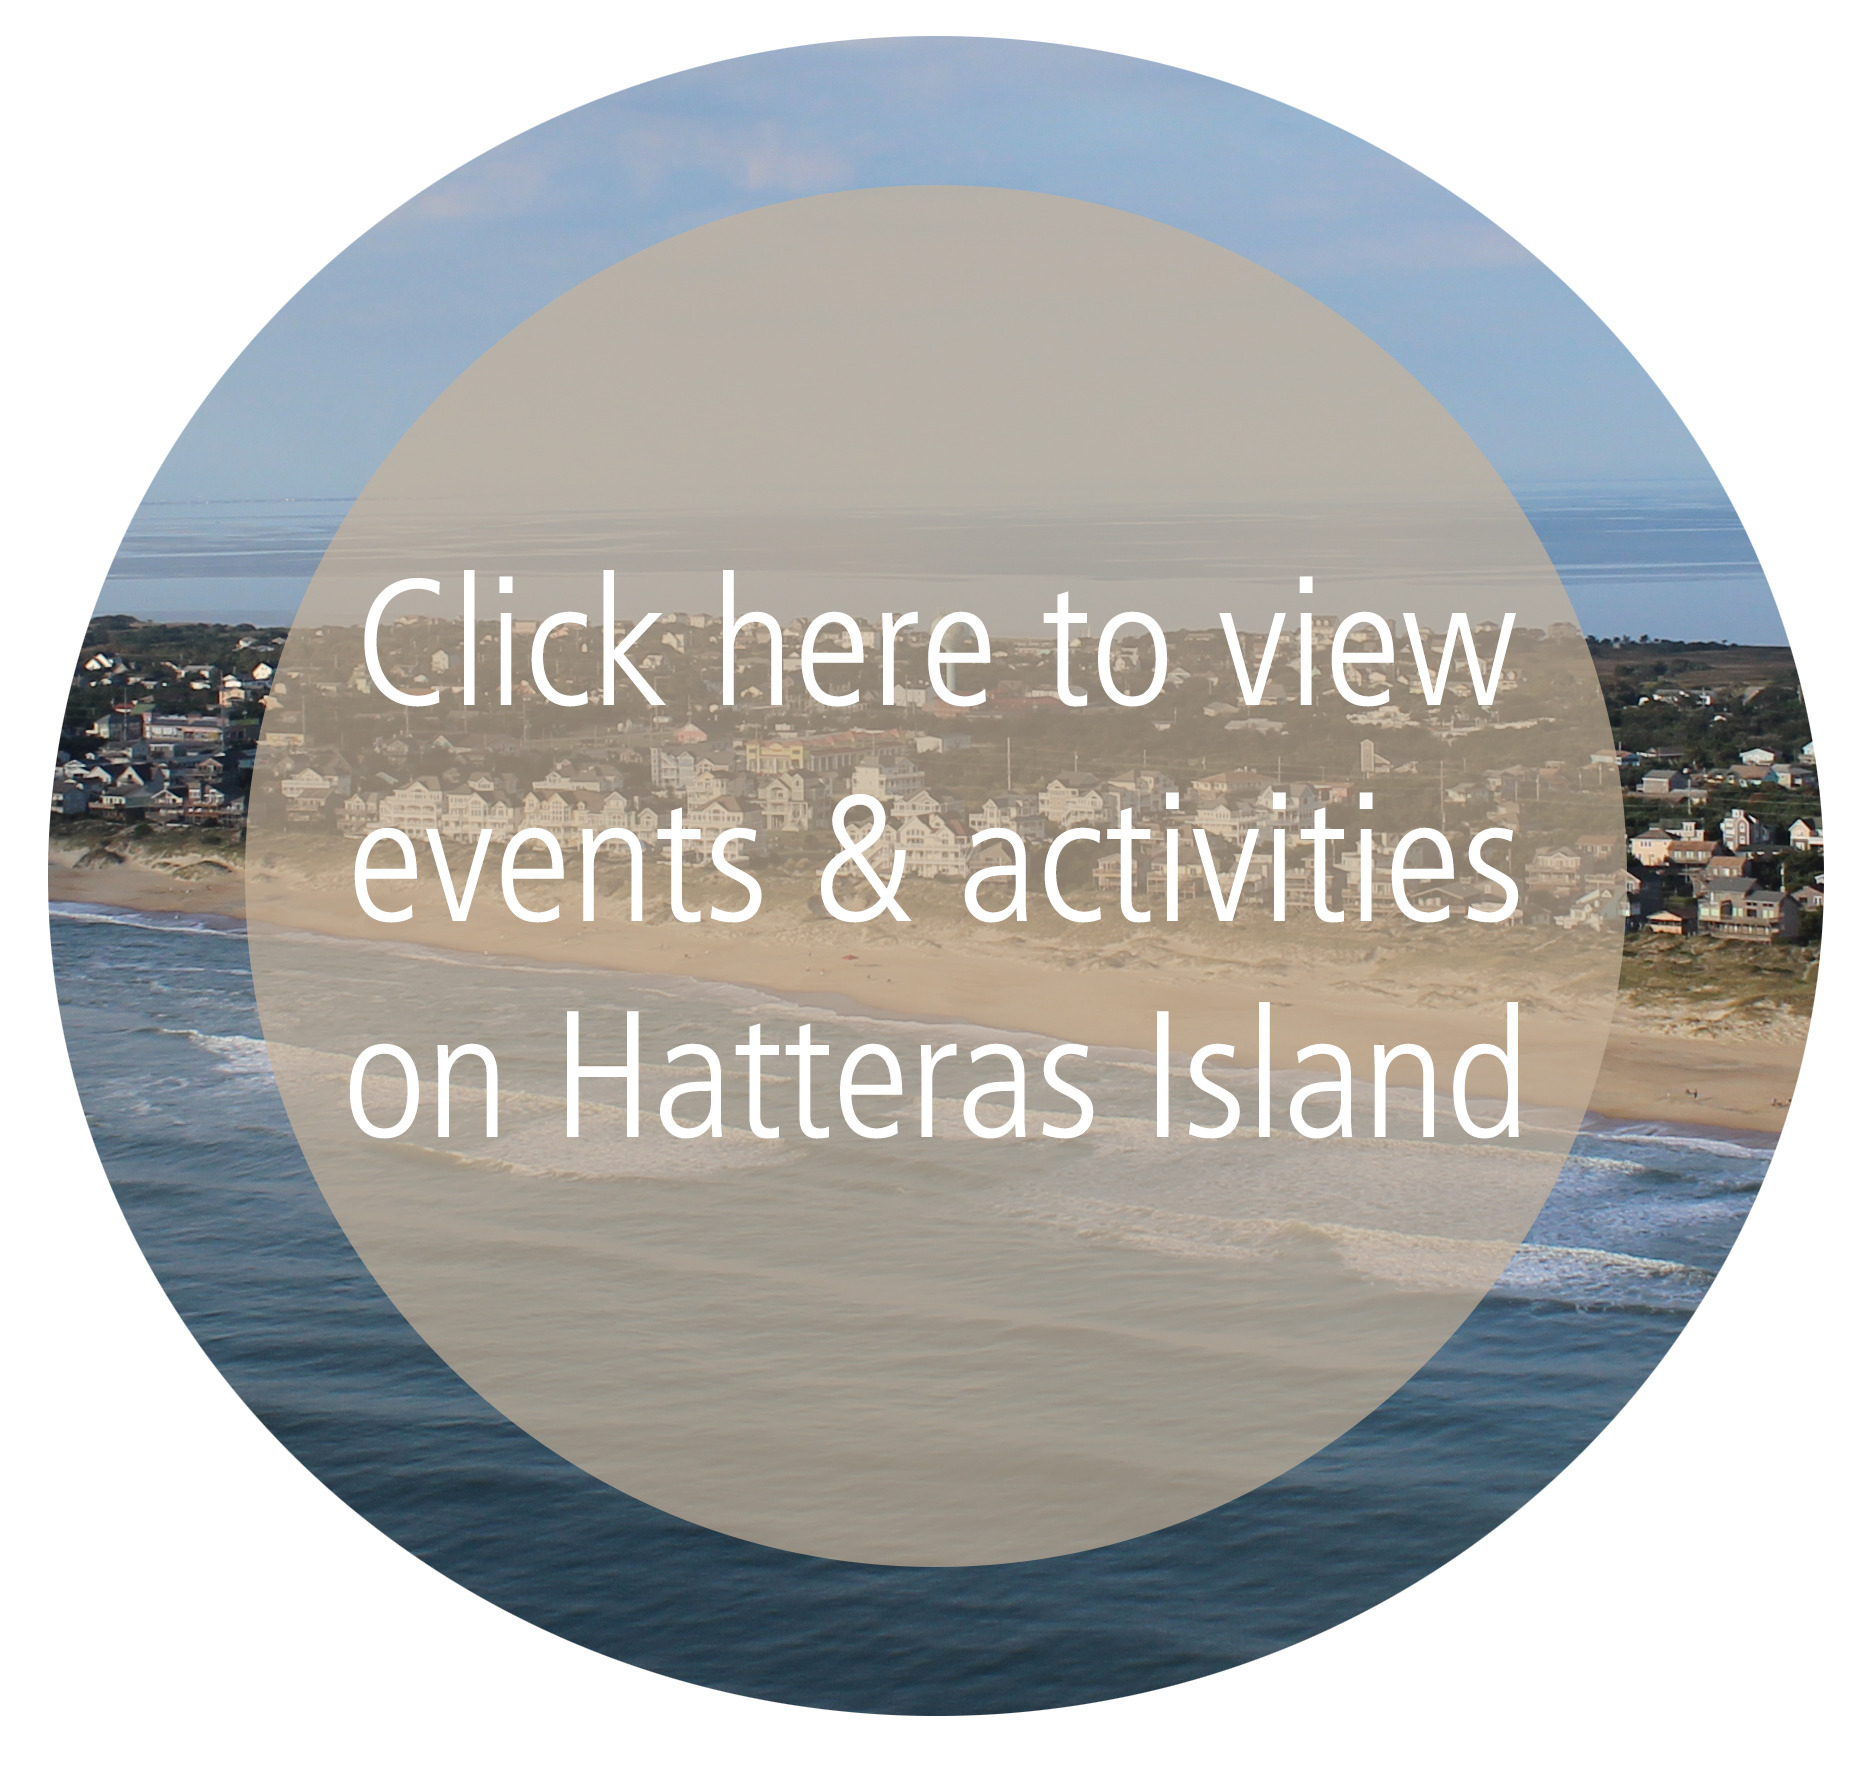 Hatteras Island Event & Activities